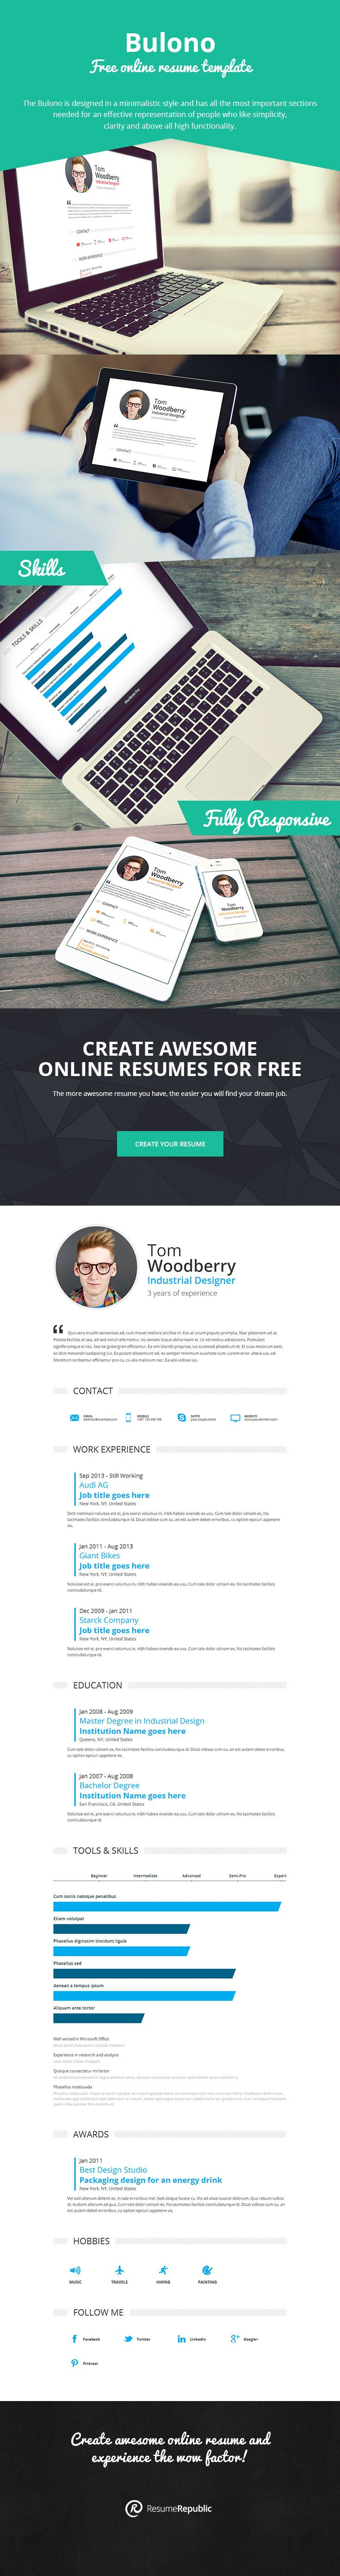 Best Resume Template Bulono Images On   Online Resume